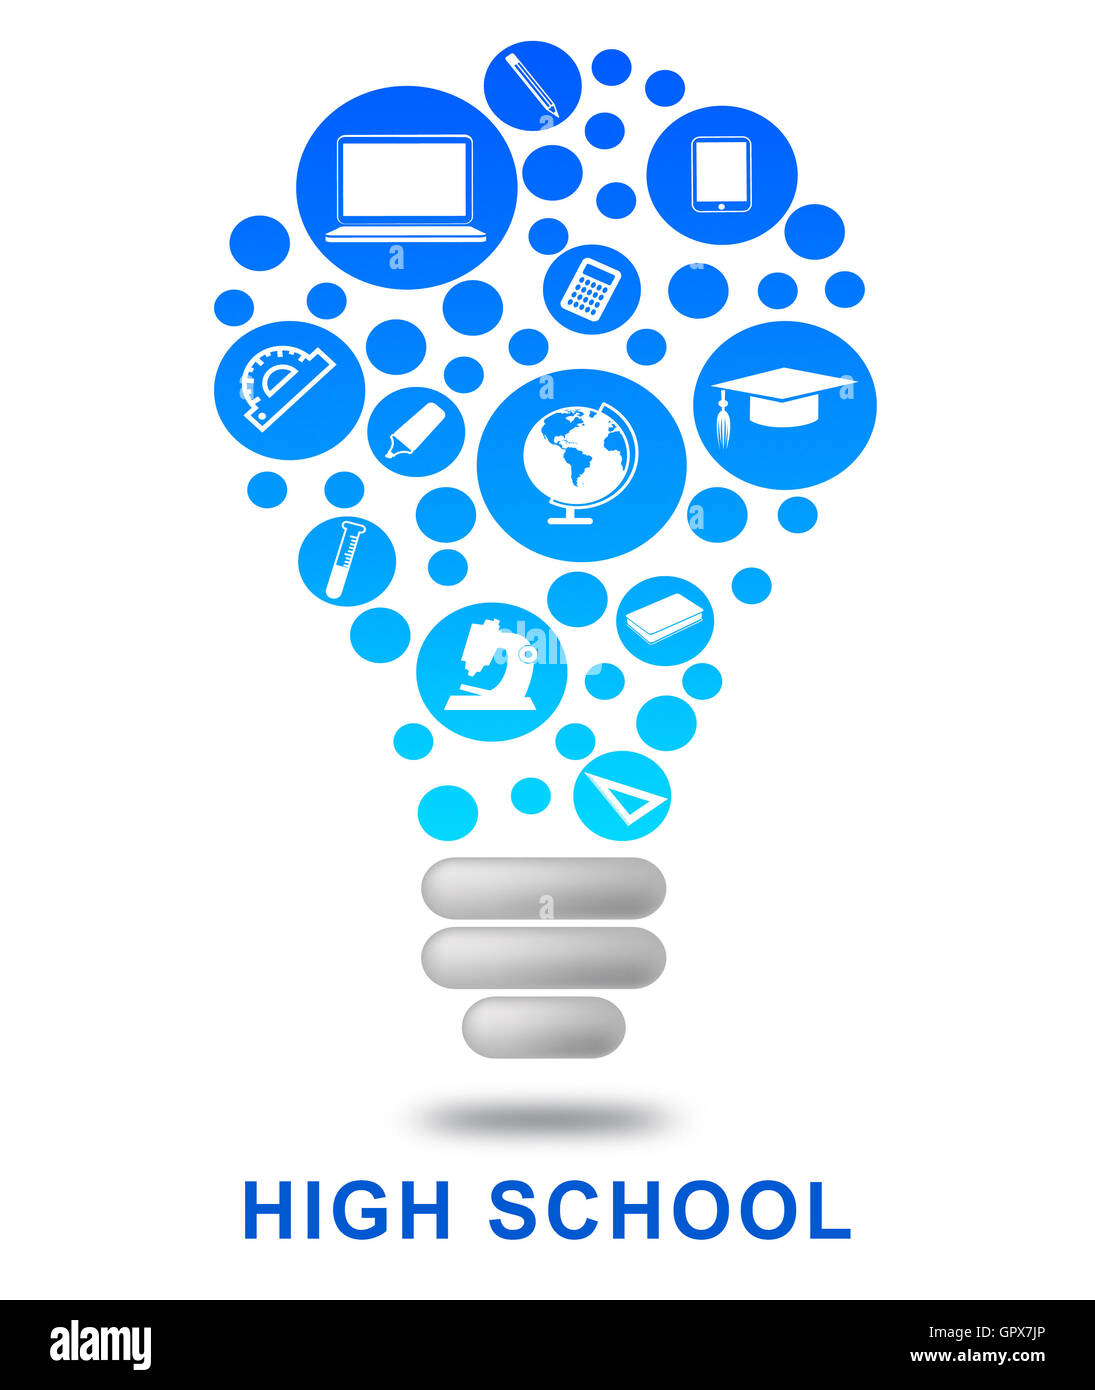 High School Lightbulb Meaning Eleventh Grade And Lamp Stock Photo